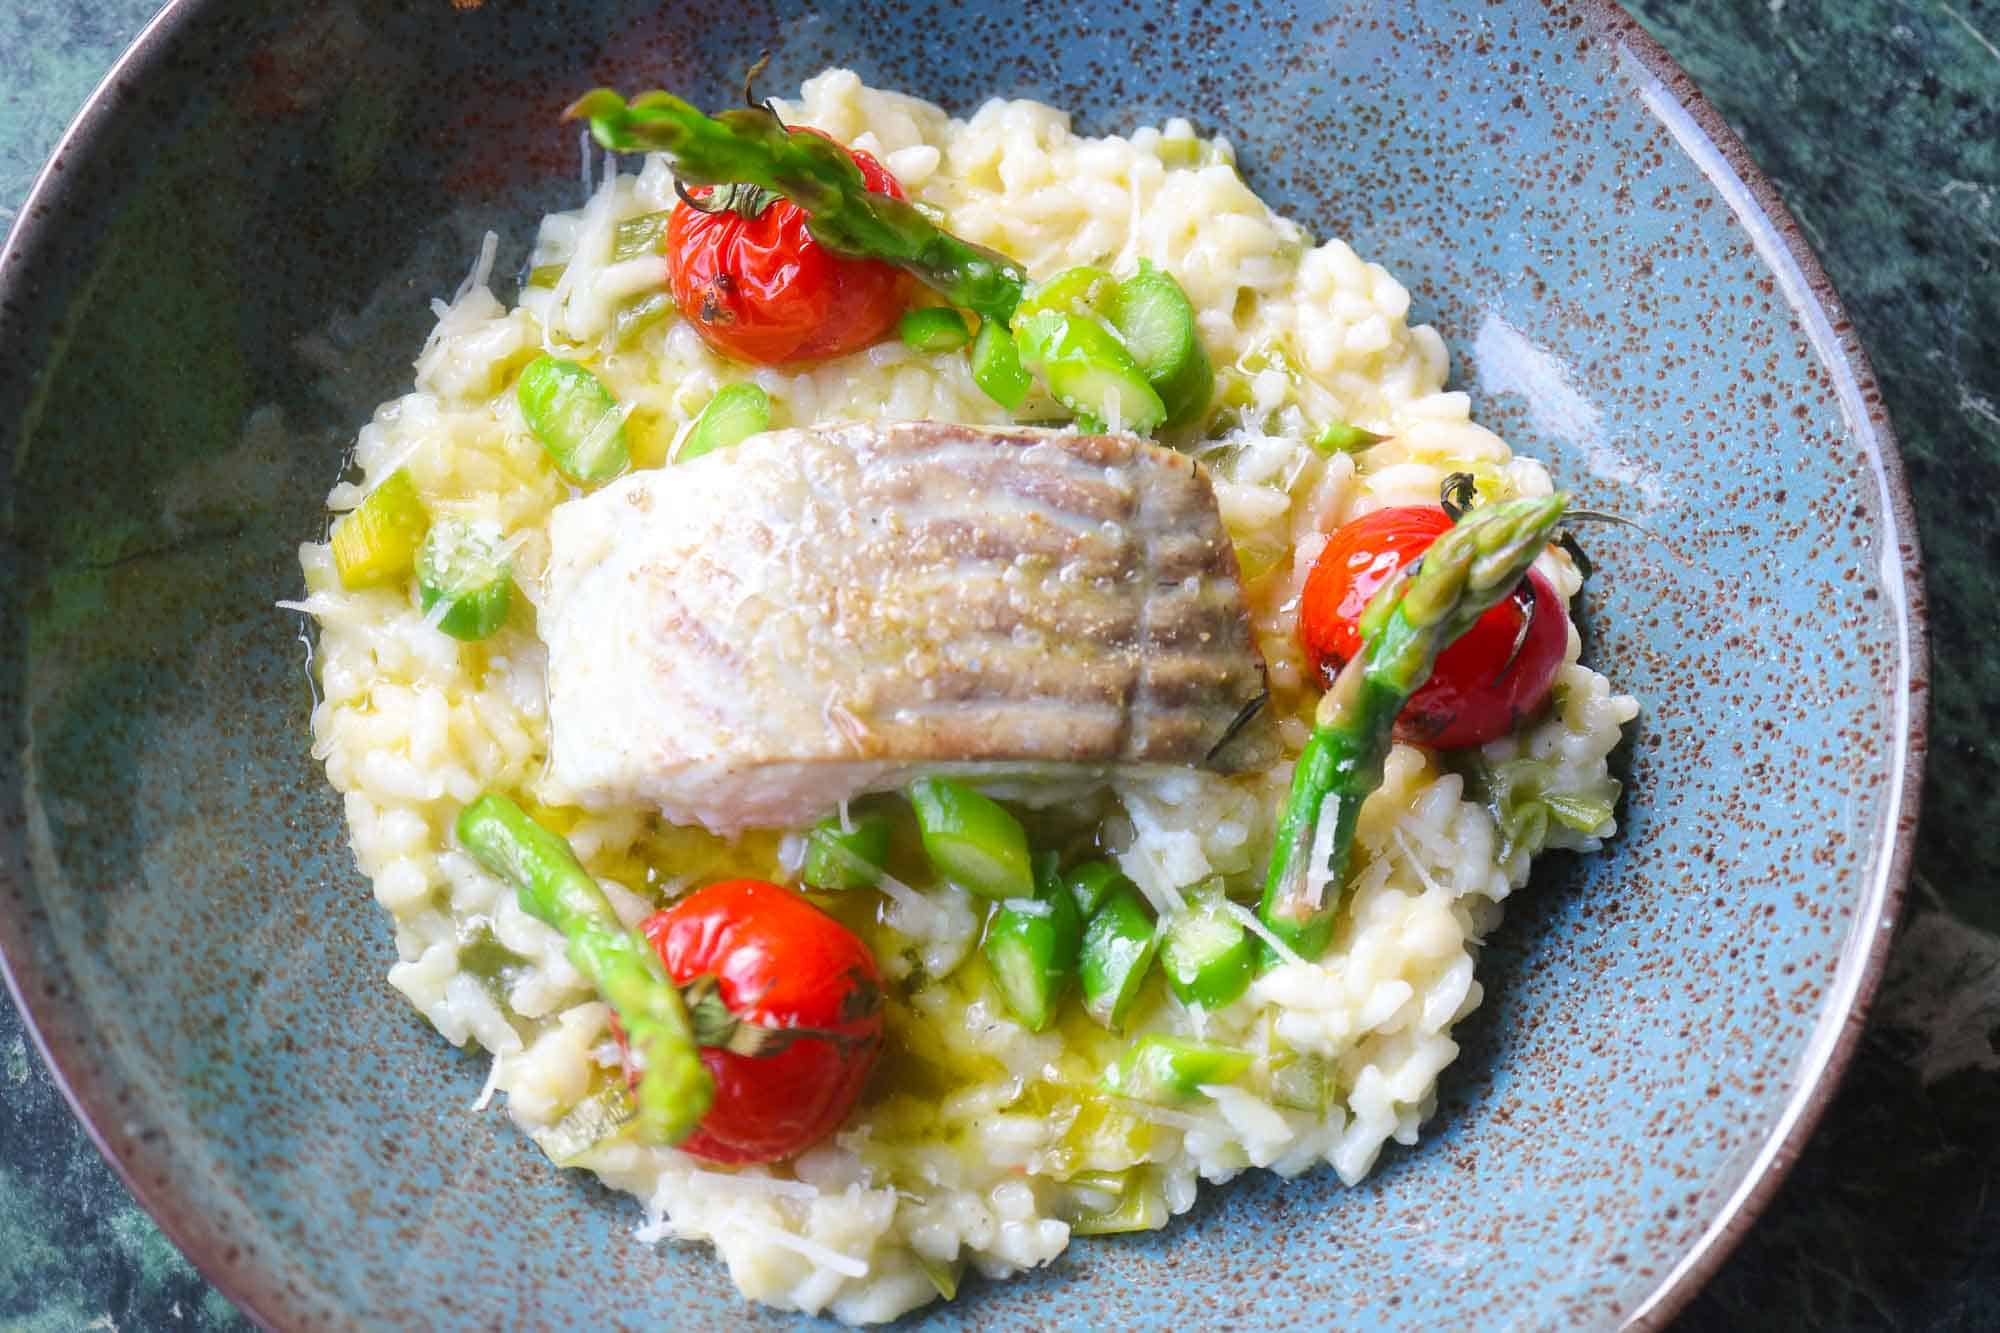 Lemon risotto with fish